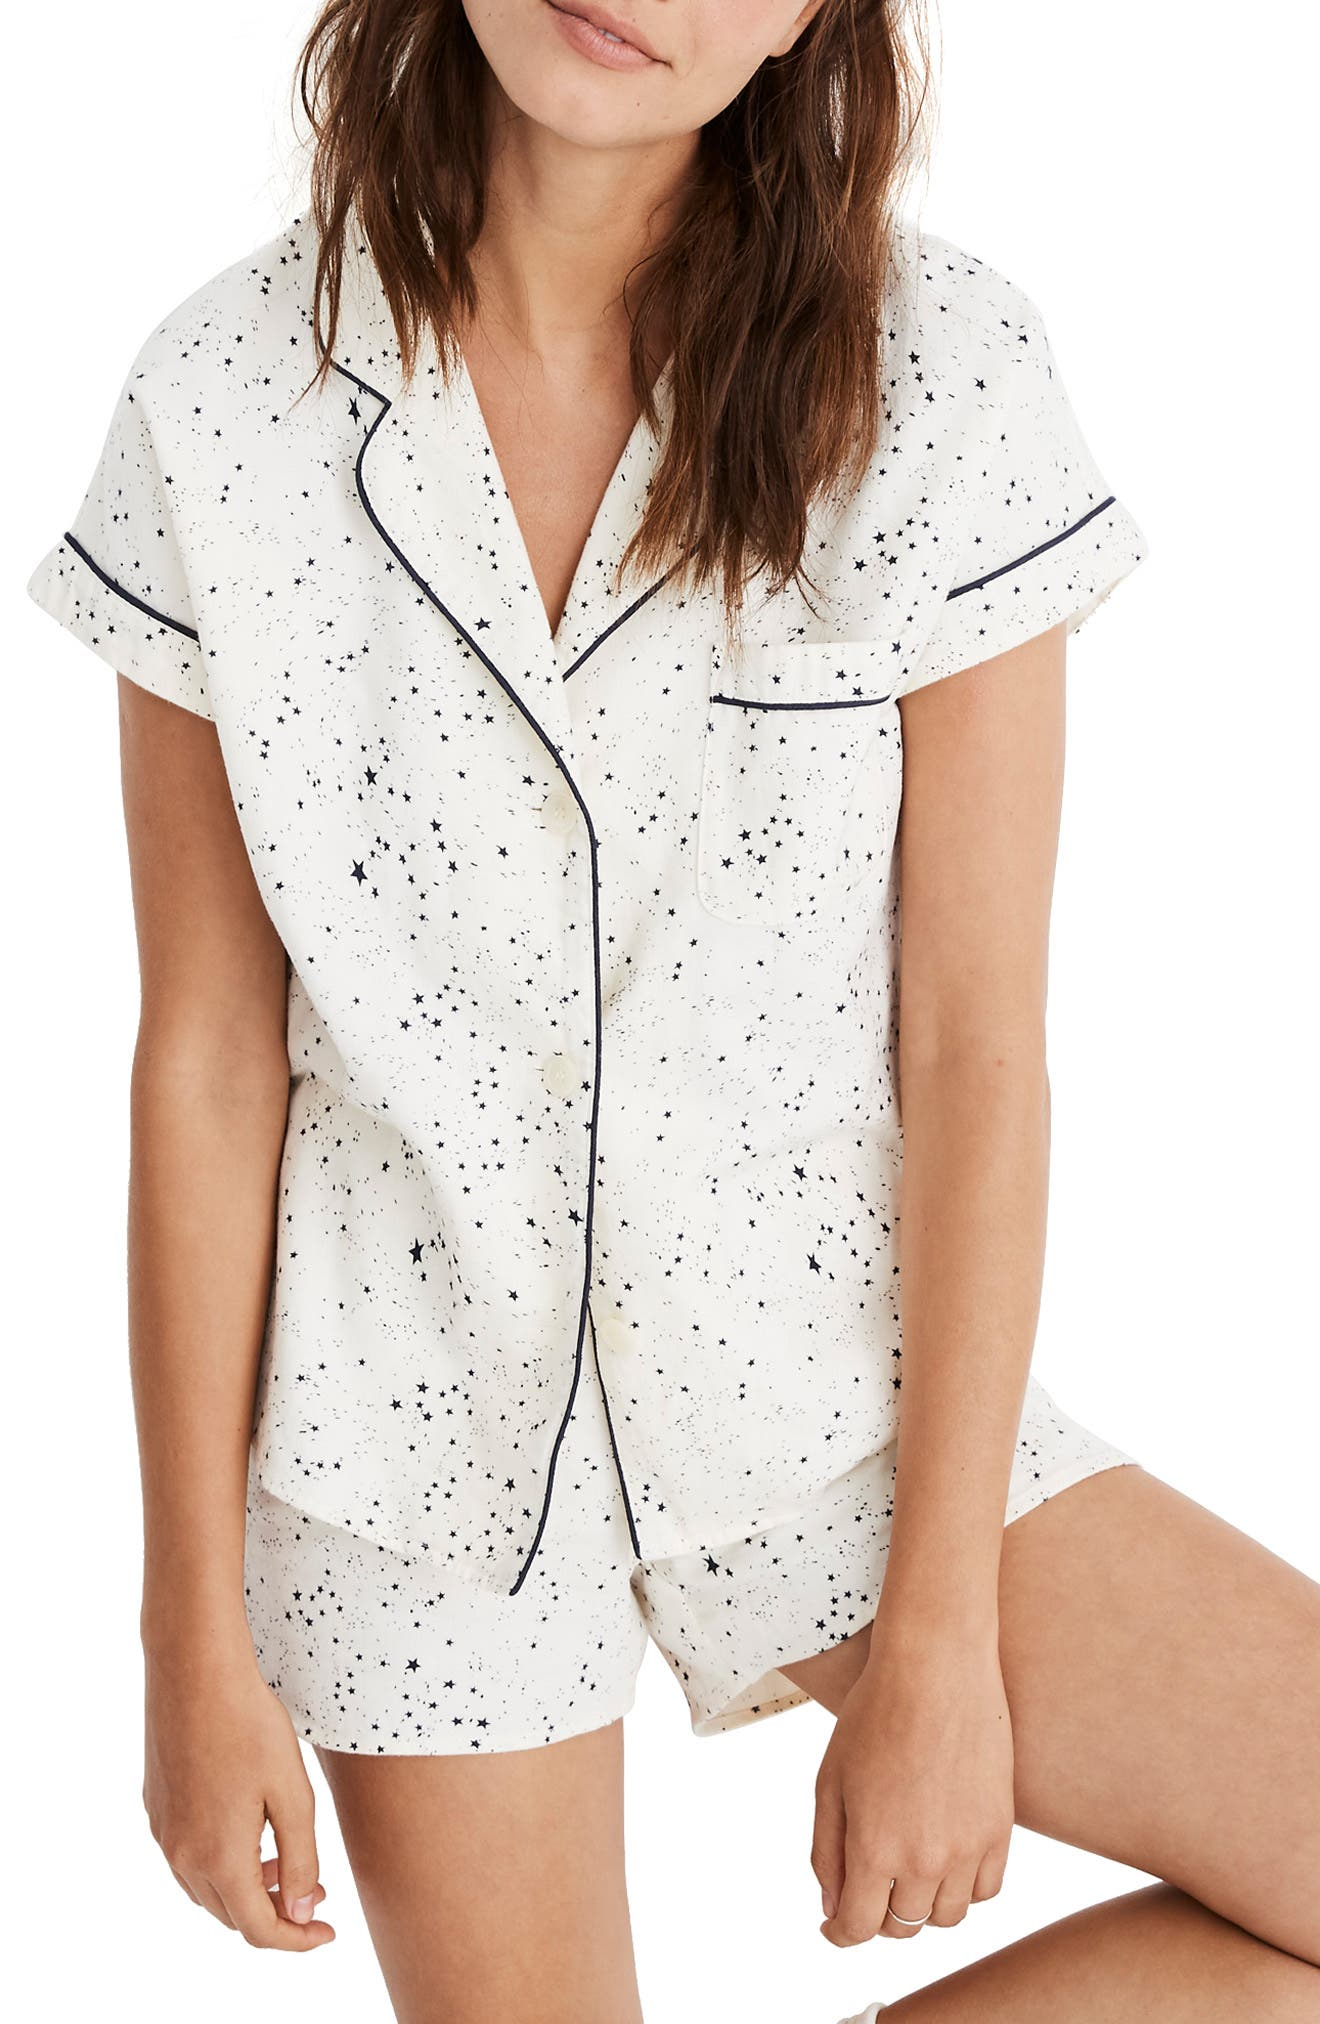 MADEWELL, Flannel Bedtime Pajamas, Main thumbnail 1, color, PEARL IVORY